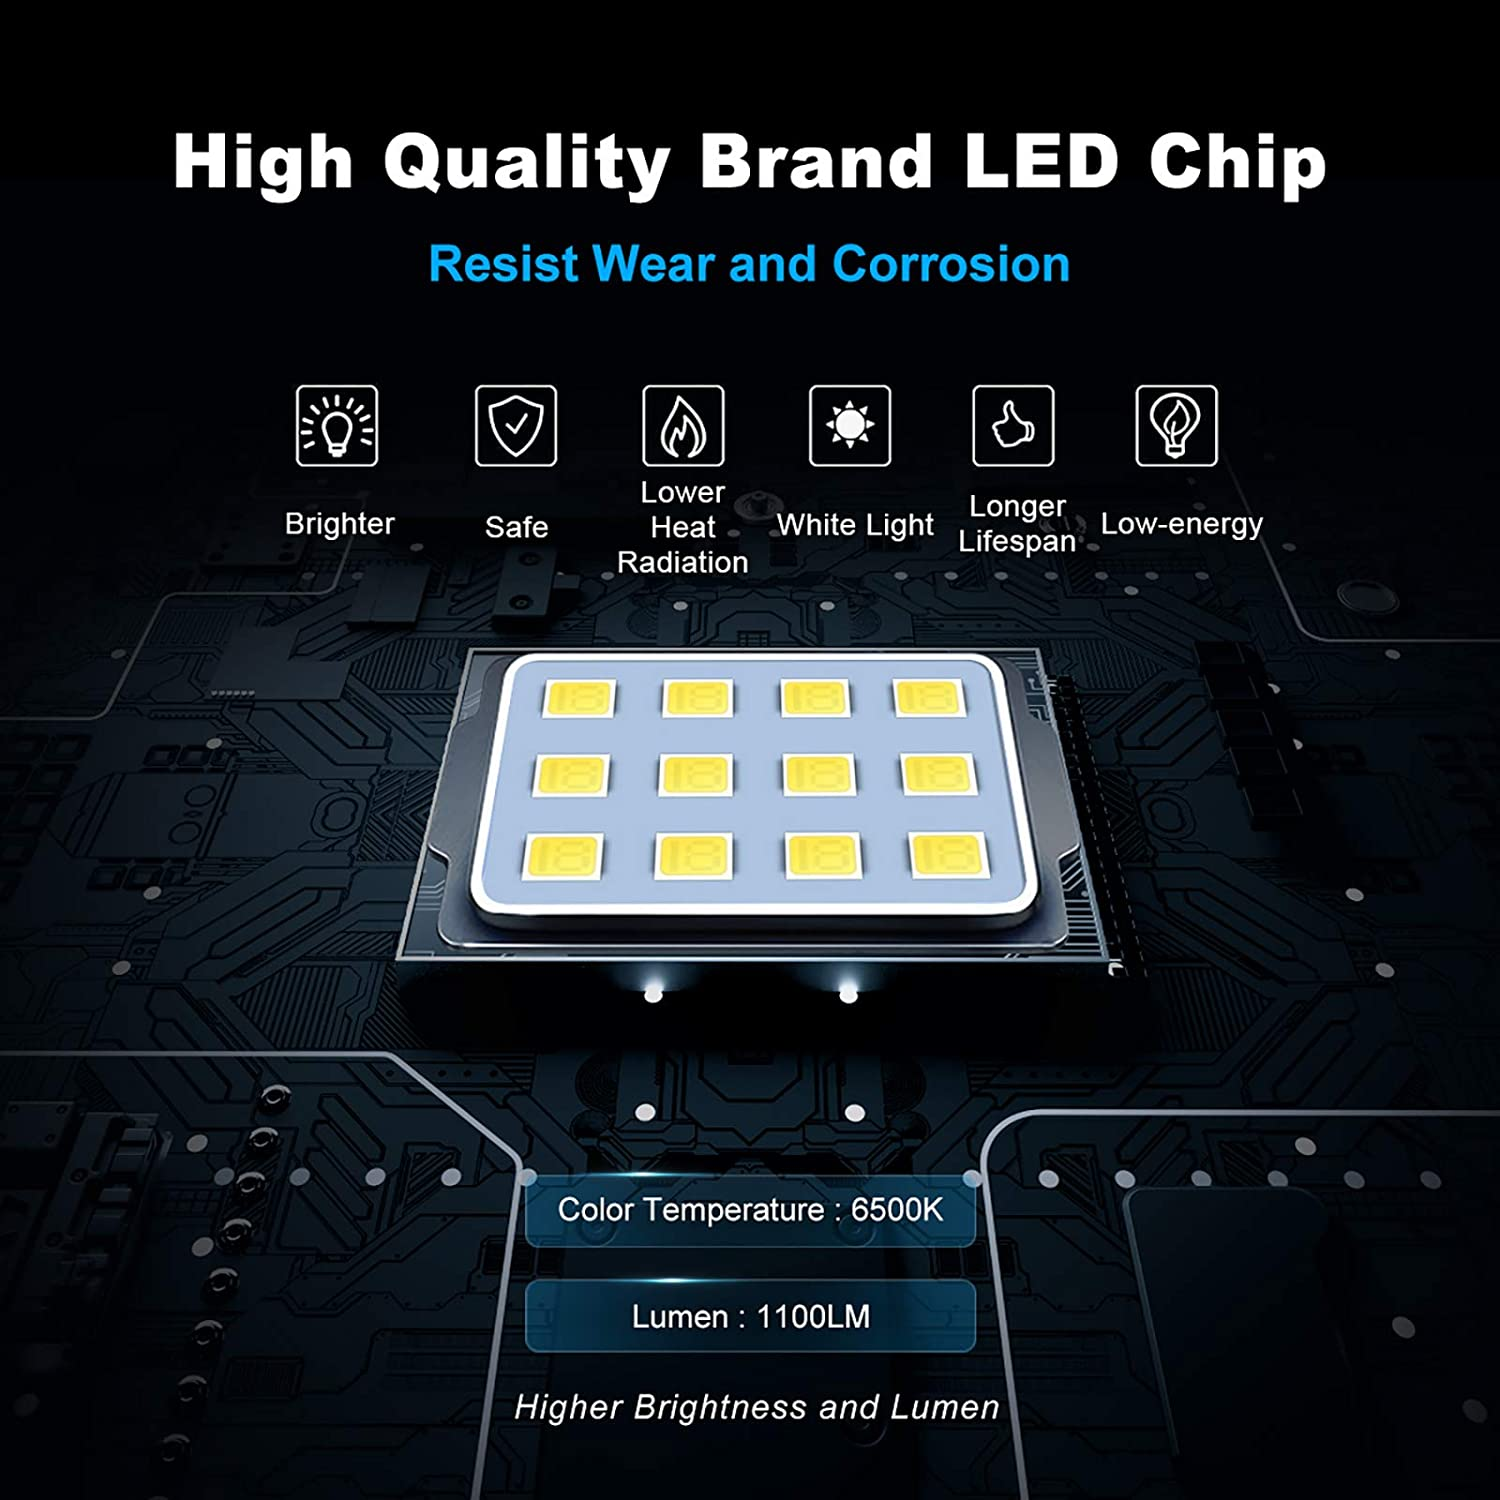 MEIKEE Led Floodlight Outdoor IP66 Waterproof Super Bright led Spot Lights Daylight White Light for Garden Billboard Daylight White Yard Patio Warehouse Garages 2 Pack 10W LED Security Light